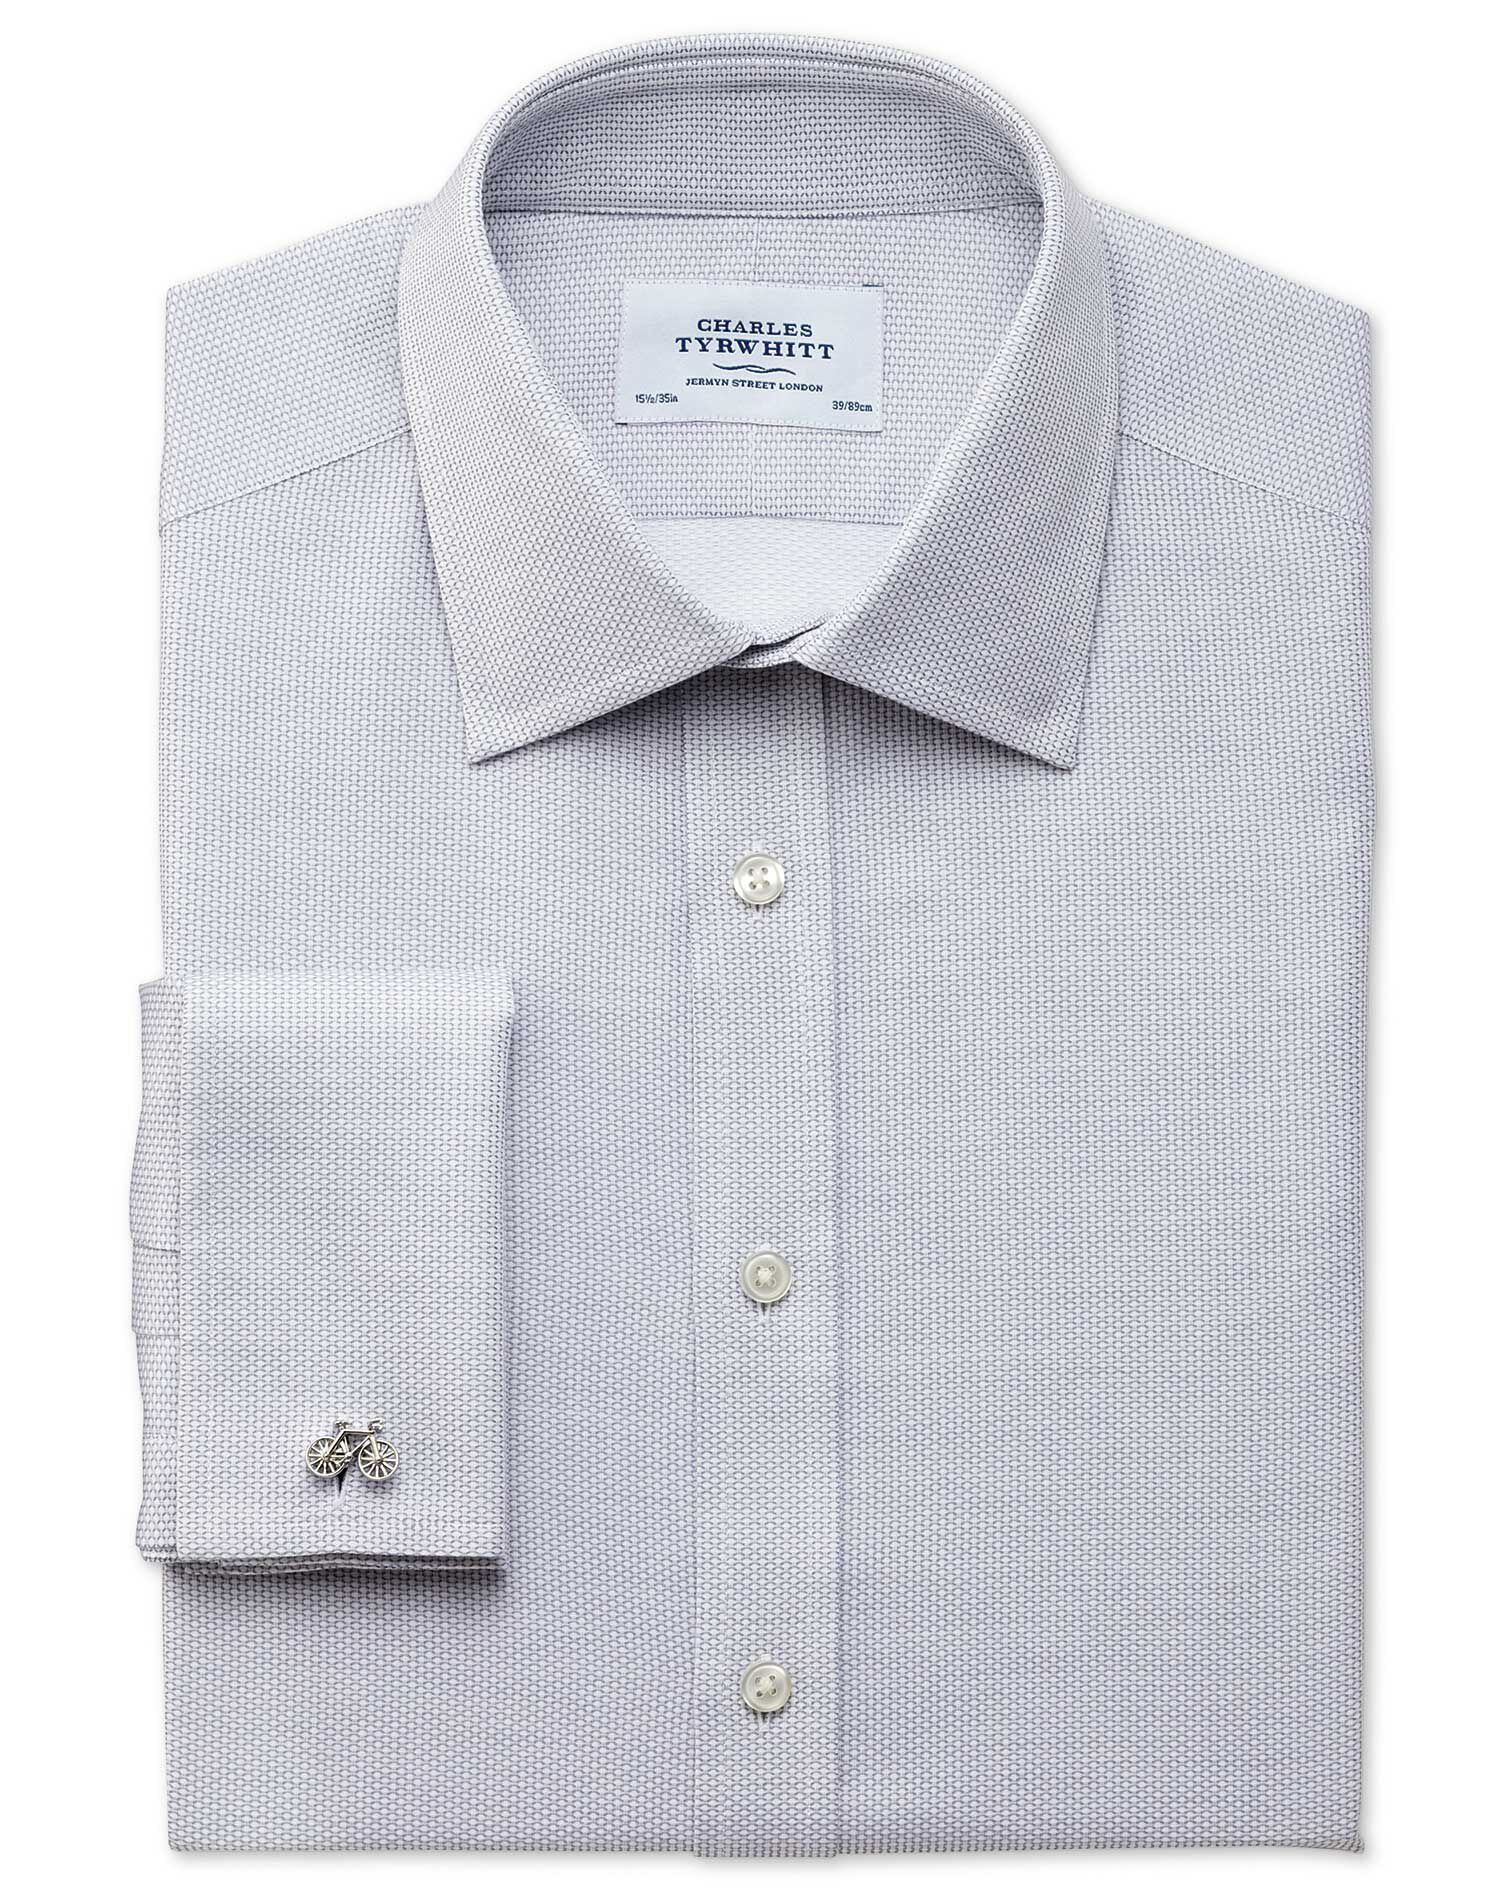 Charles Tyrwhitt Extra Slim Fit Egyptian Cotton Diamond Texture Light Grey Formal Shirt Size 17.5/36